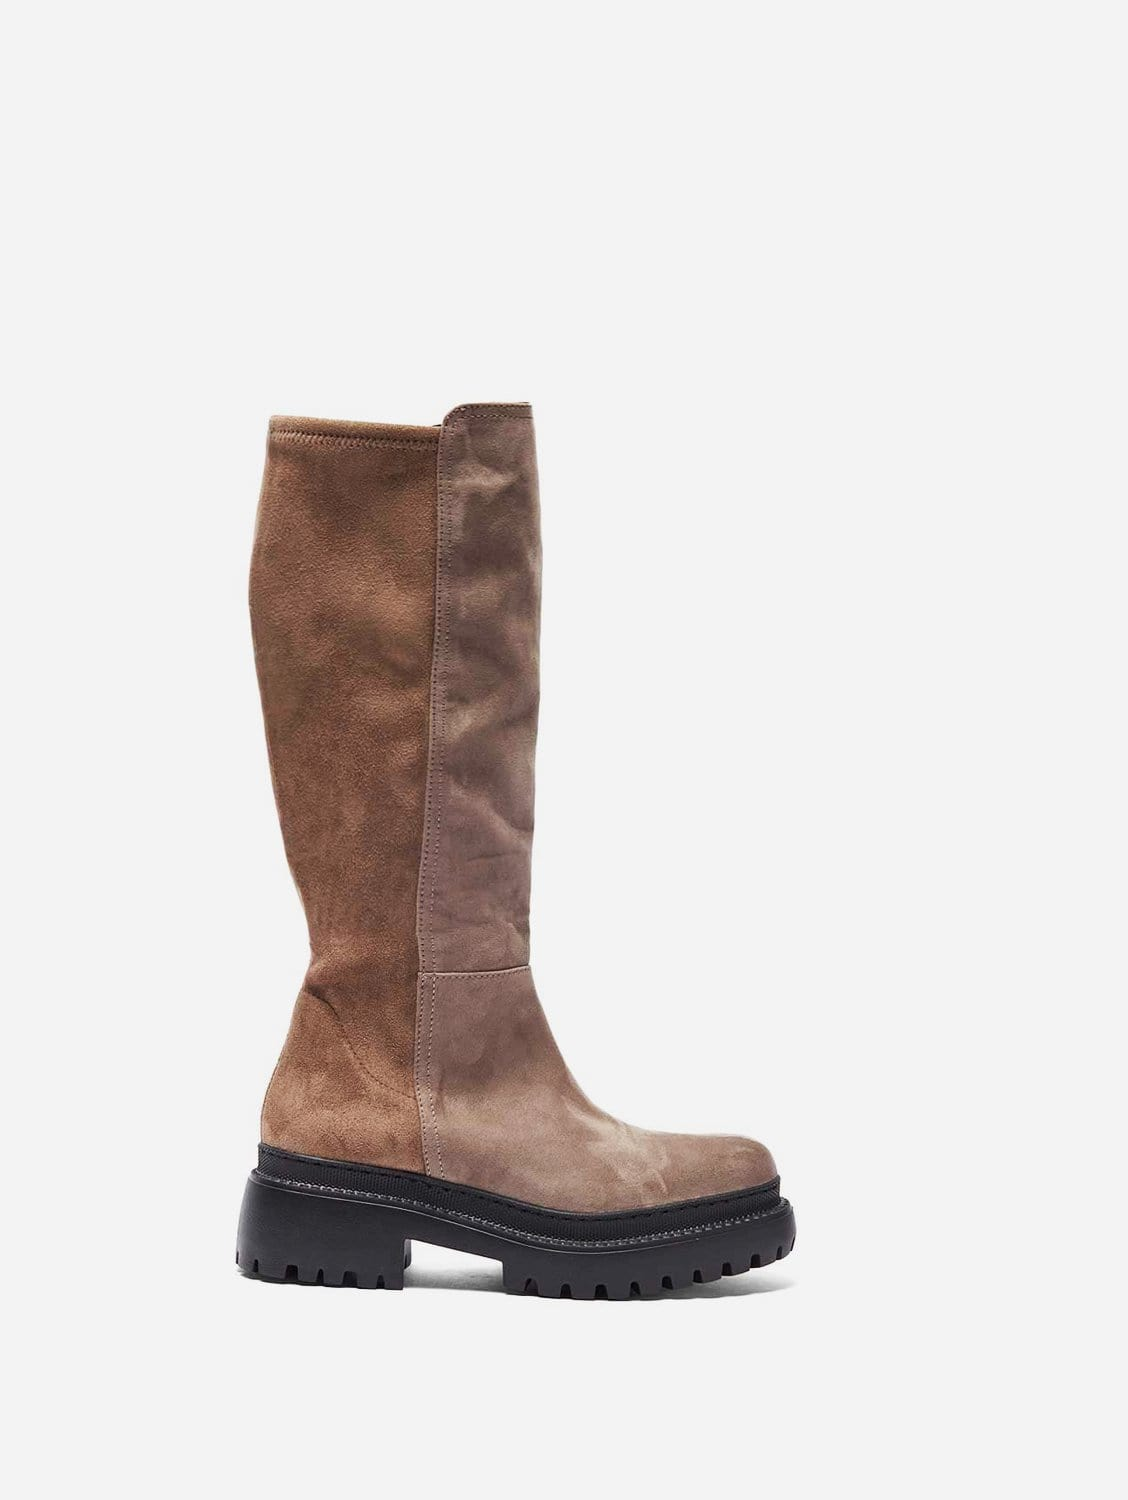 Laila Recycled Polyester Vegan Suede Winter Boots   Taupe